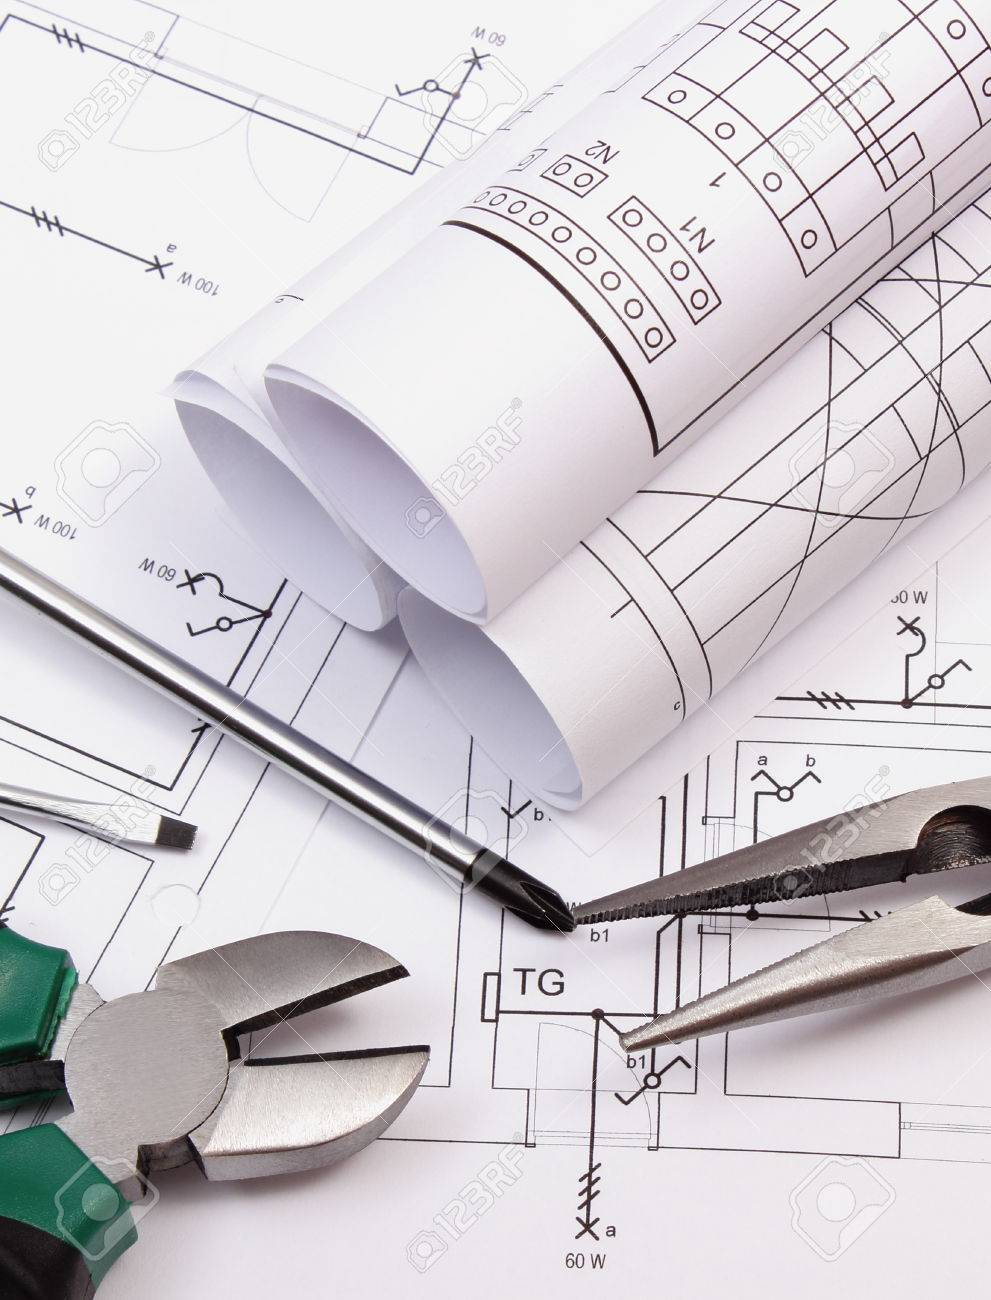 Rolls Of Diagrams Metal Pliers And Screwdriver On Electrical Engineering Construction Drawing House Work